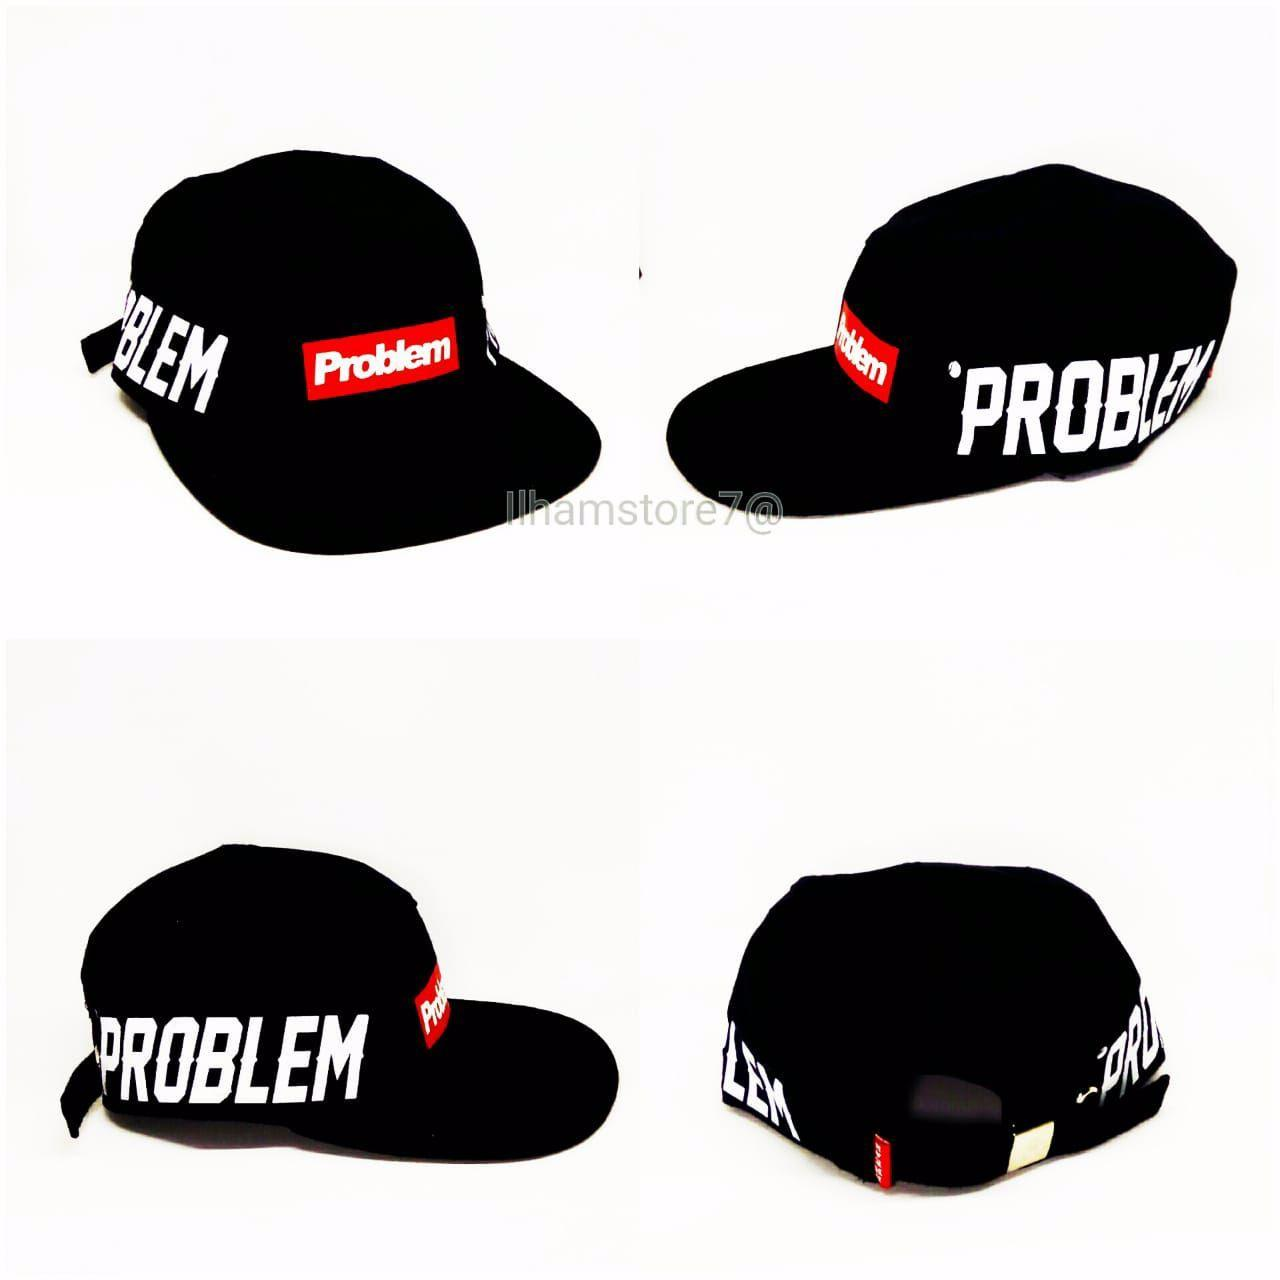 Topi distro pria topi snapback Rappel premium new model style fashion and  modis Topi 65d04a19b9